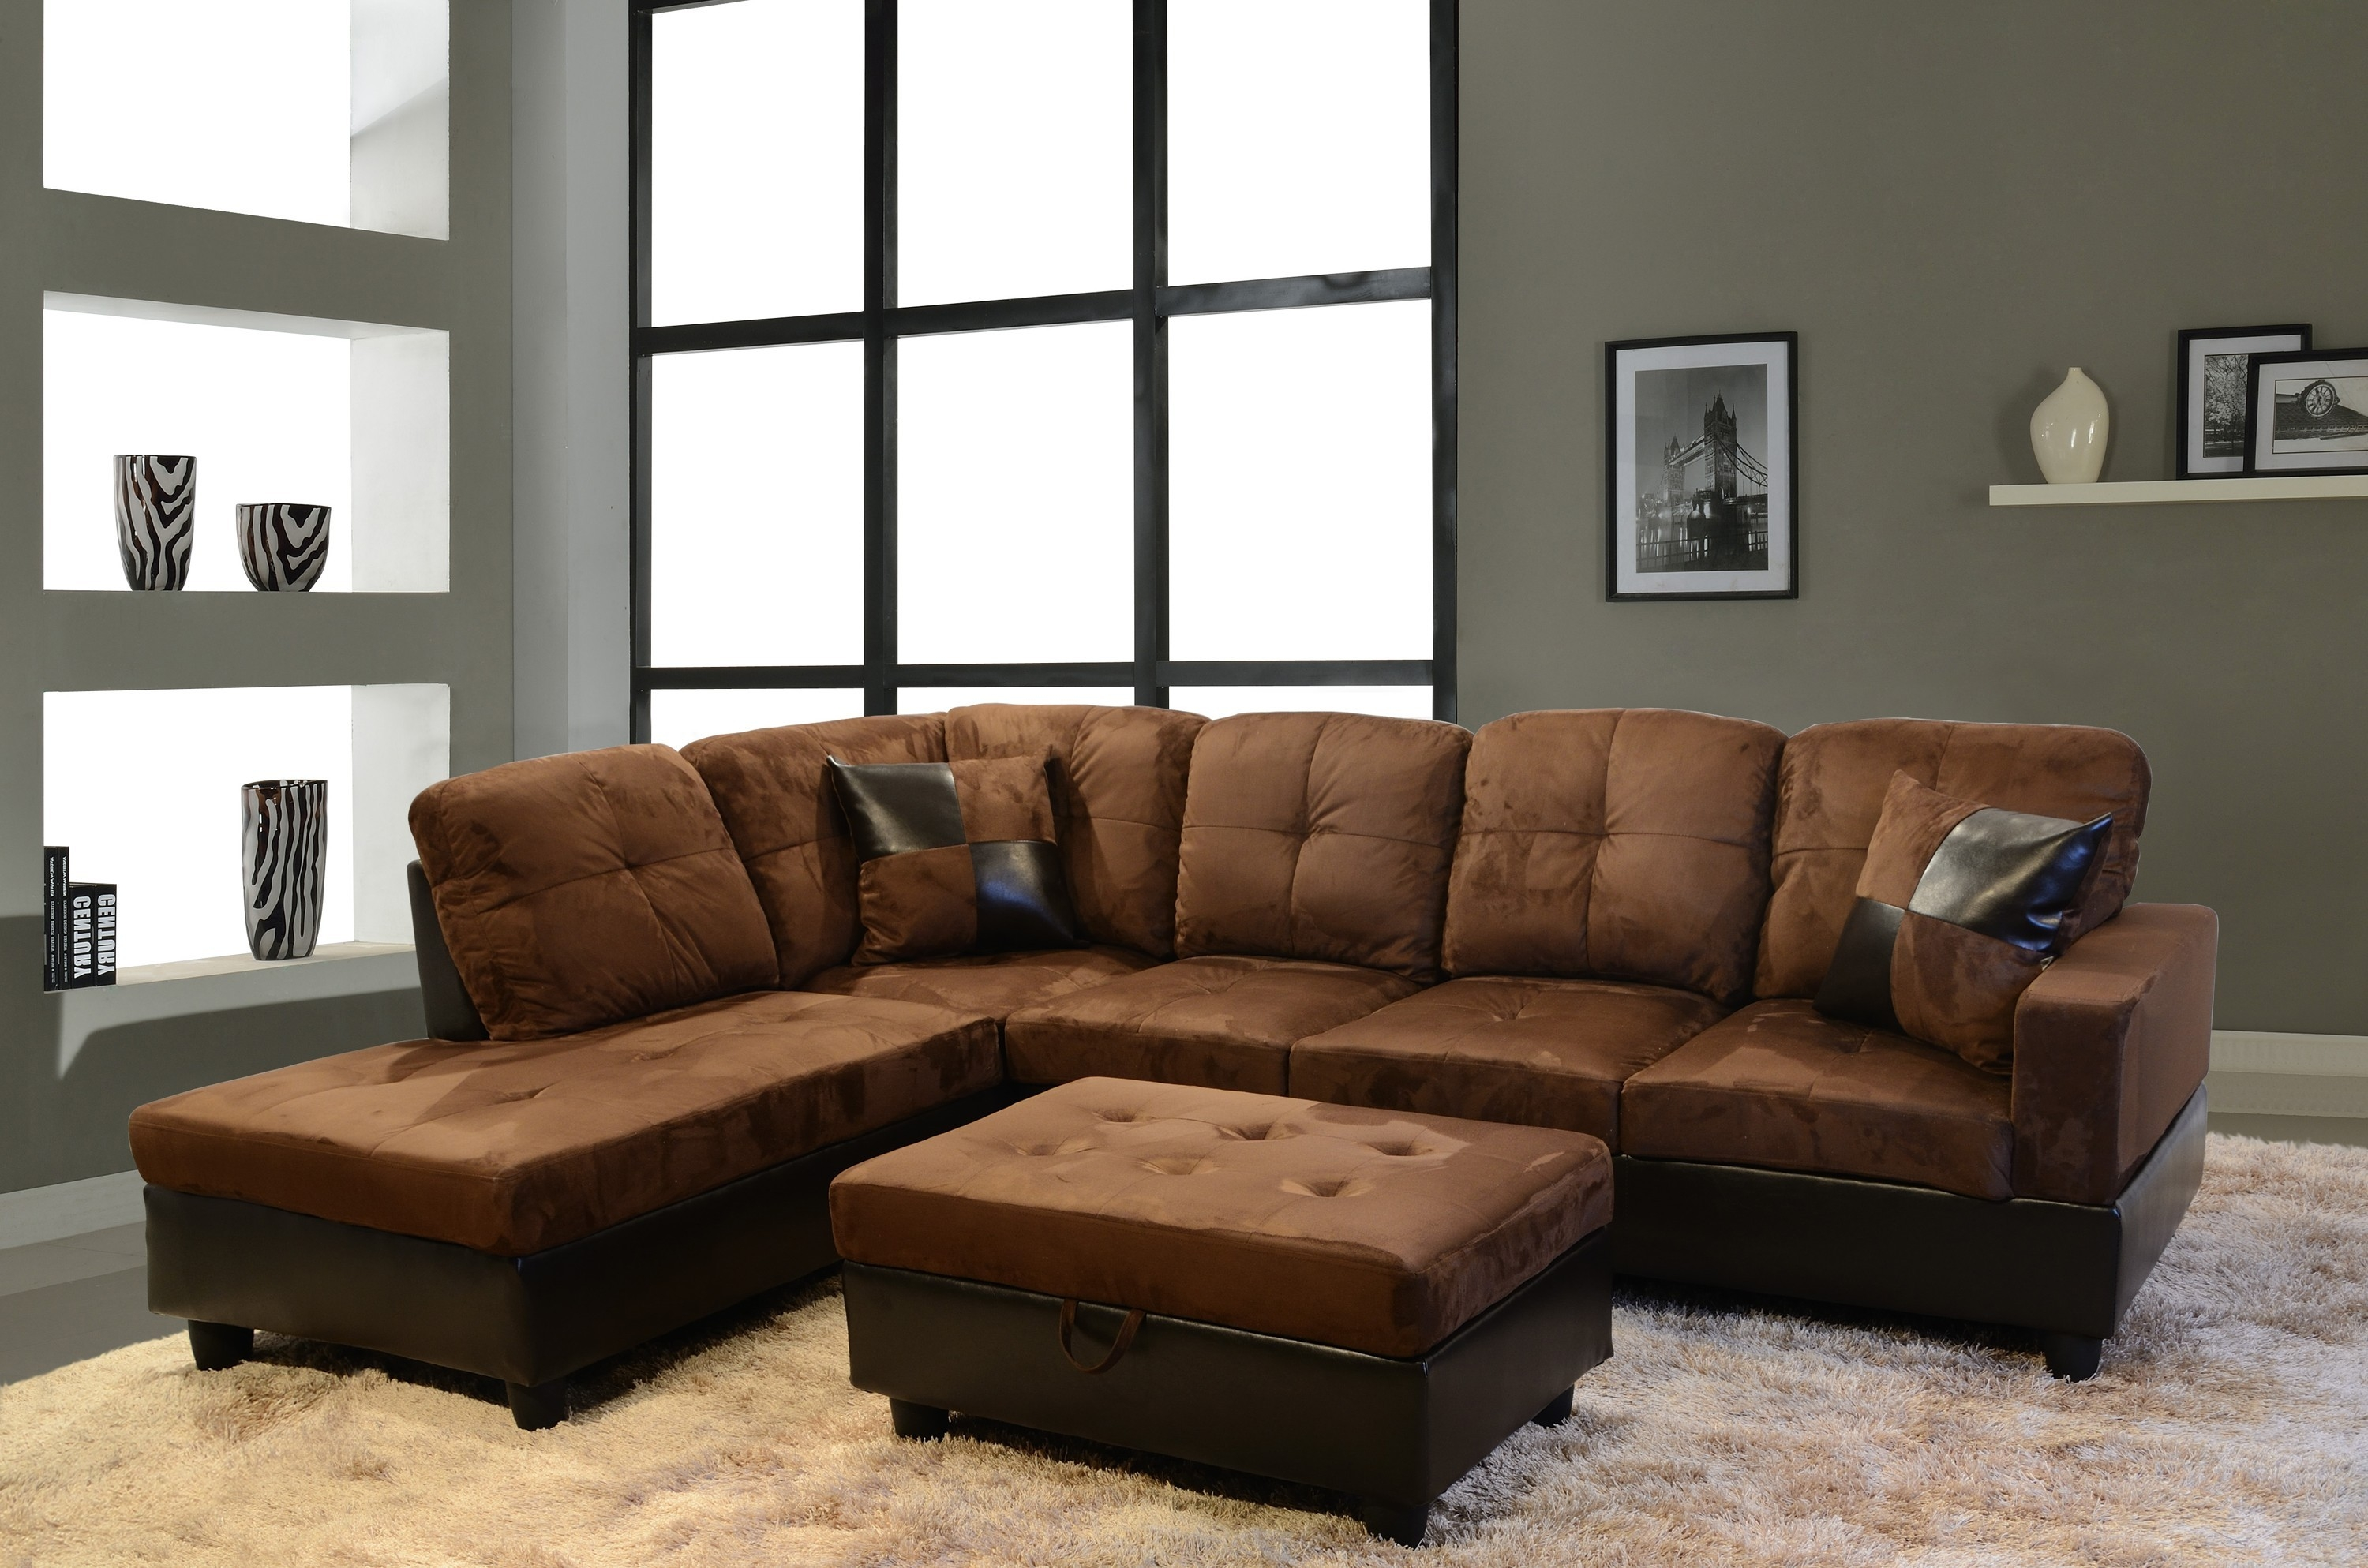 Brown Sectional Couch Good Looking Living Room Decoration Using For Abbyson Living Charlotte Dark Brown Sectional Sofa And Ottoman (Image 3 of 15)